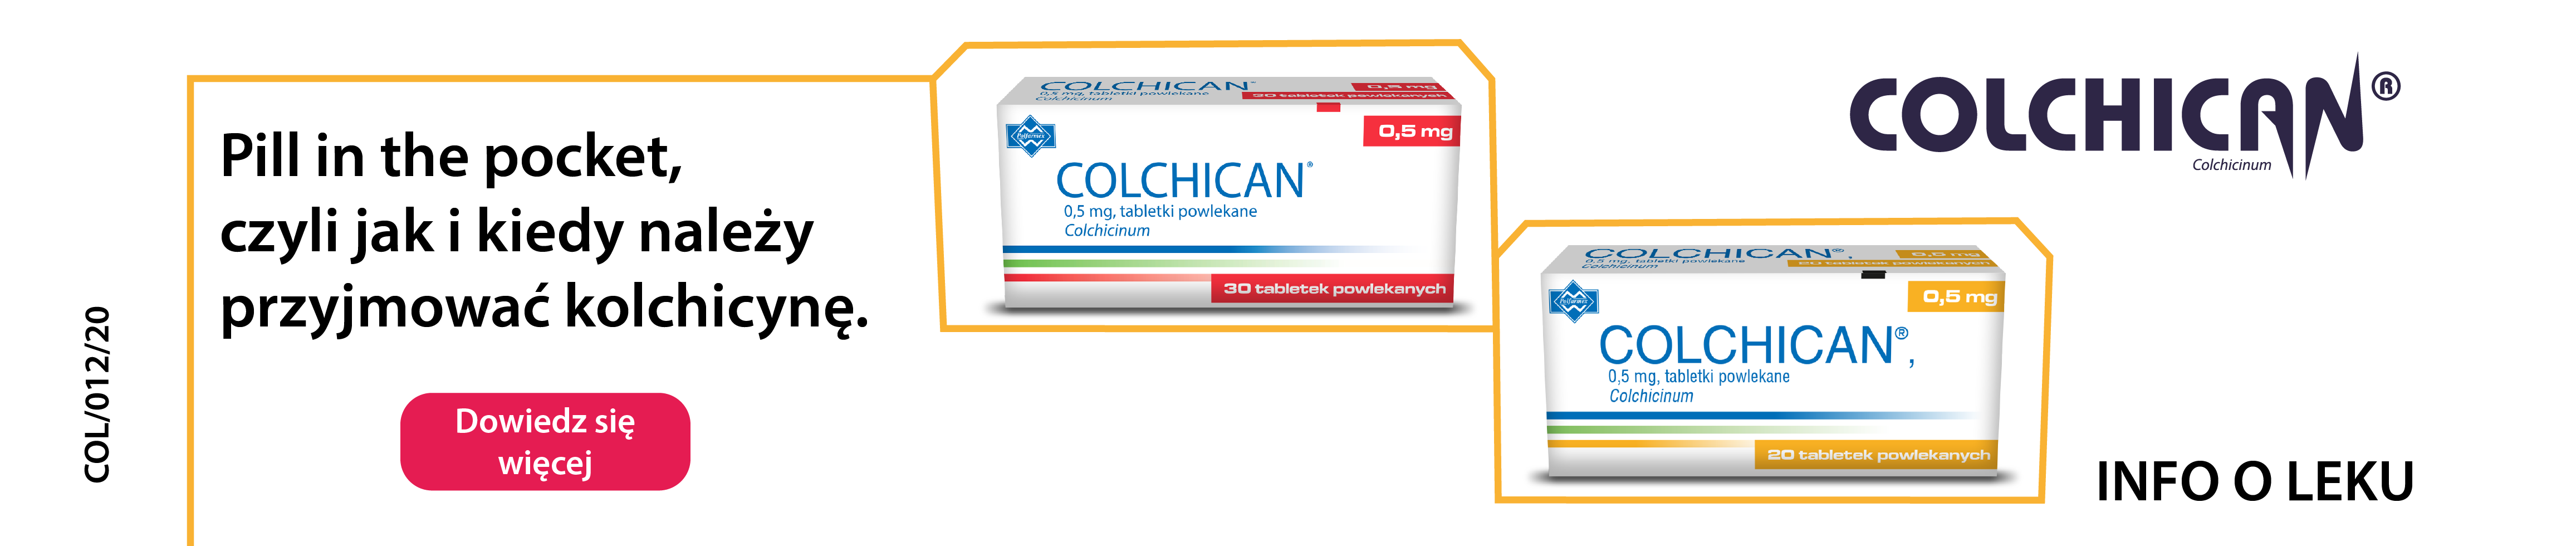 Colchican